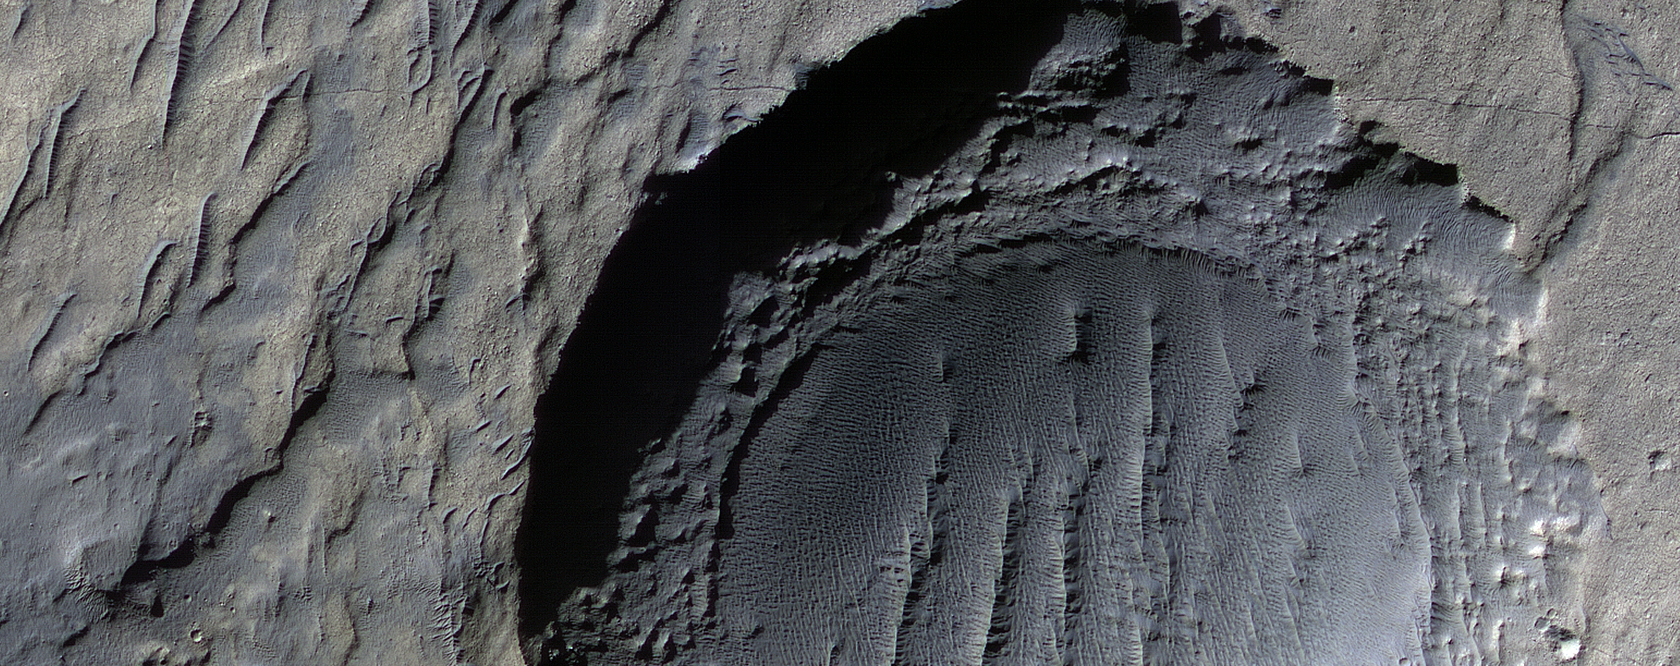 Degradation of Craters in Noachis Terra